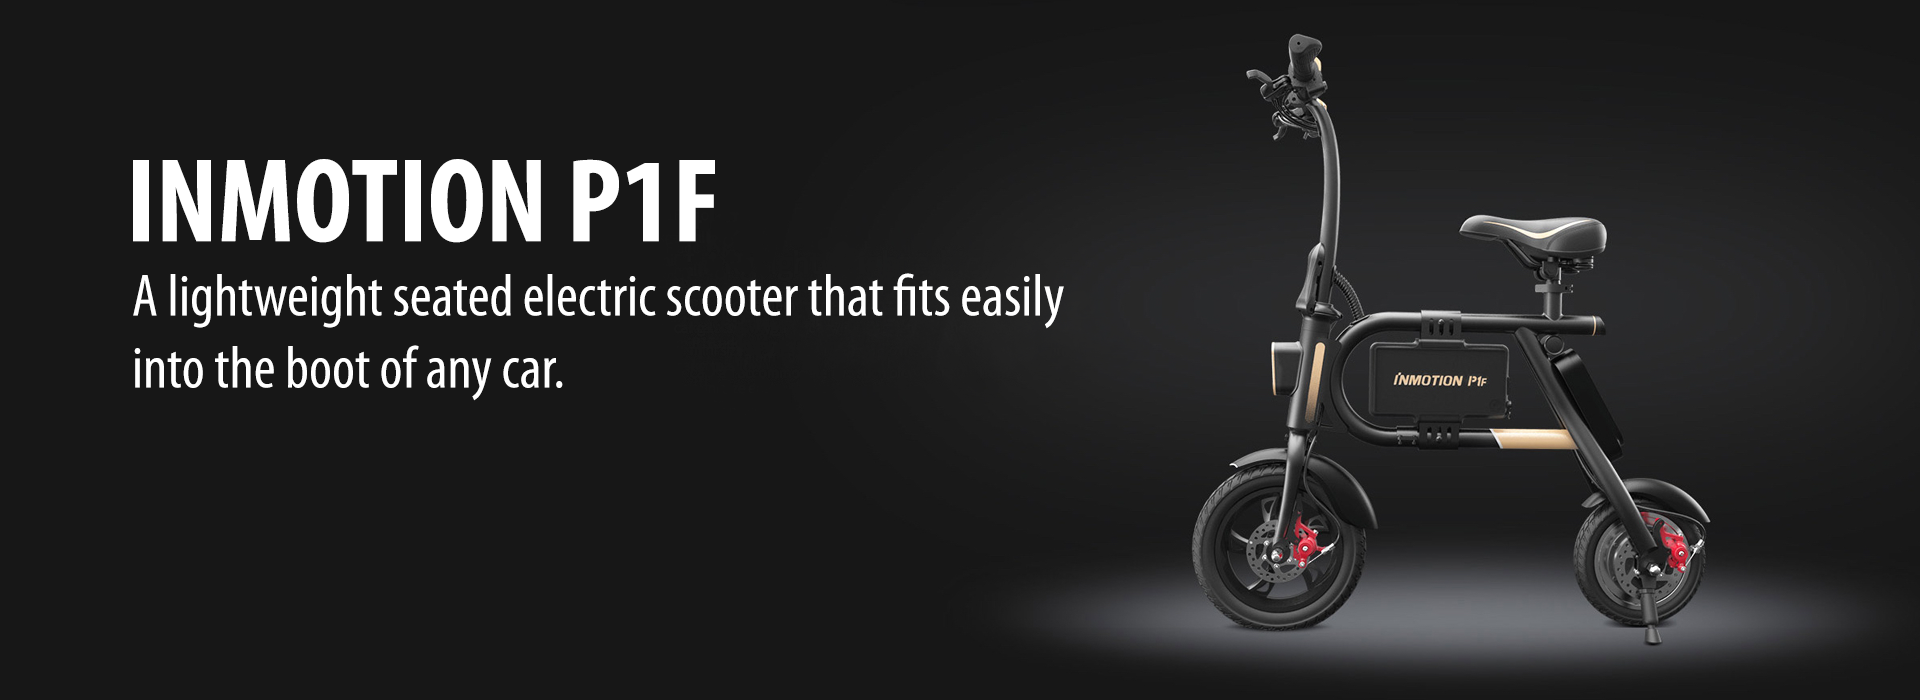 Inmotion P1F Light Electric Scooter with Seat